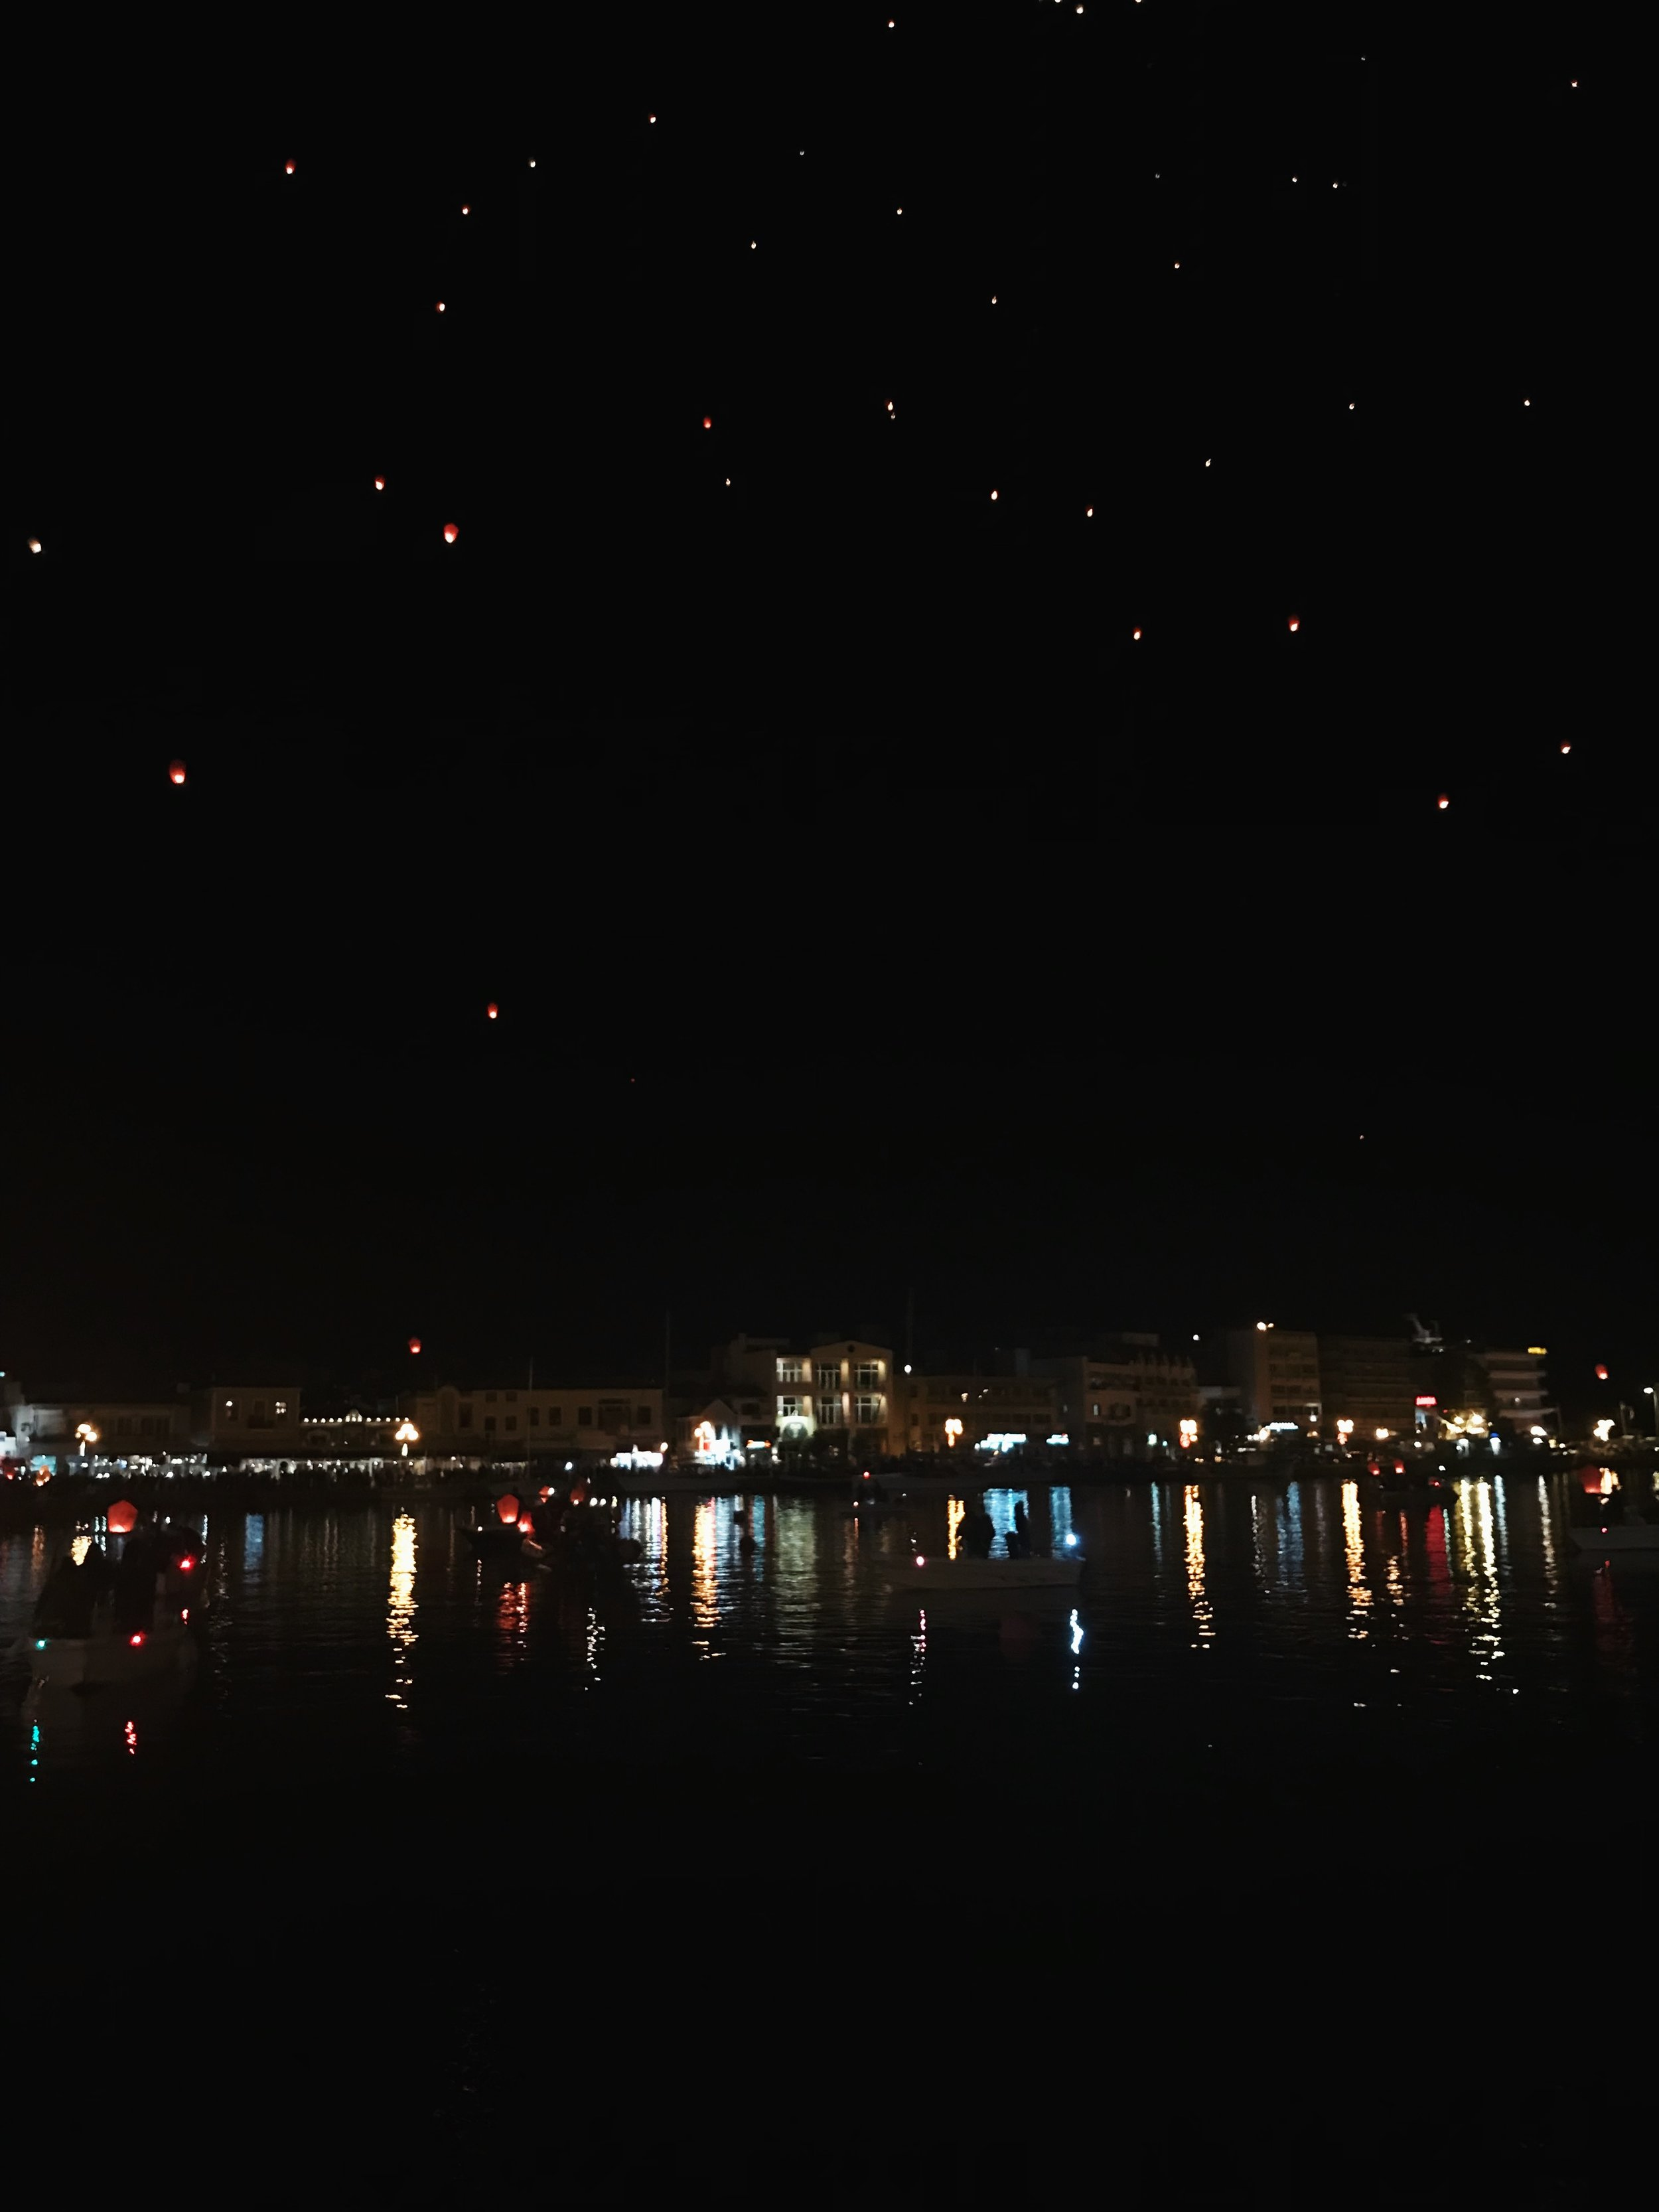 For Good Friday, there was a parade & the sky was filled with lanterns. Felt like I was in Tangled.